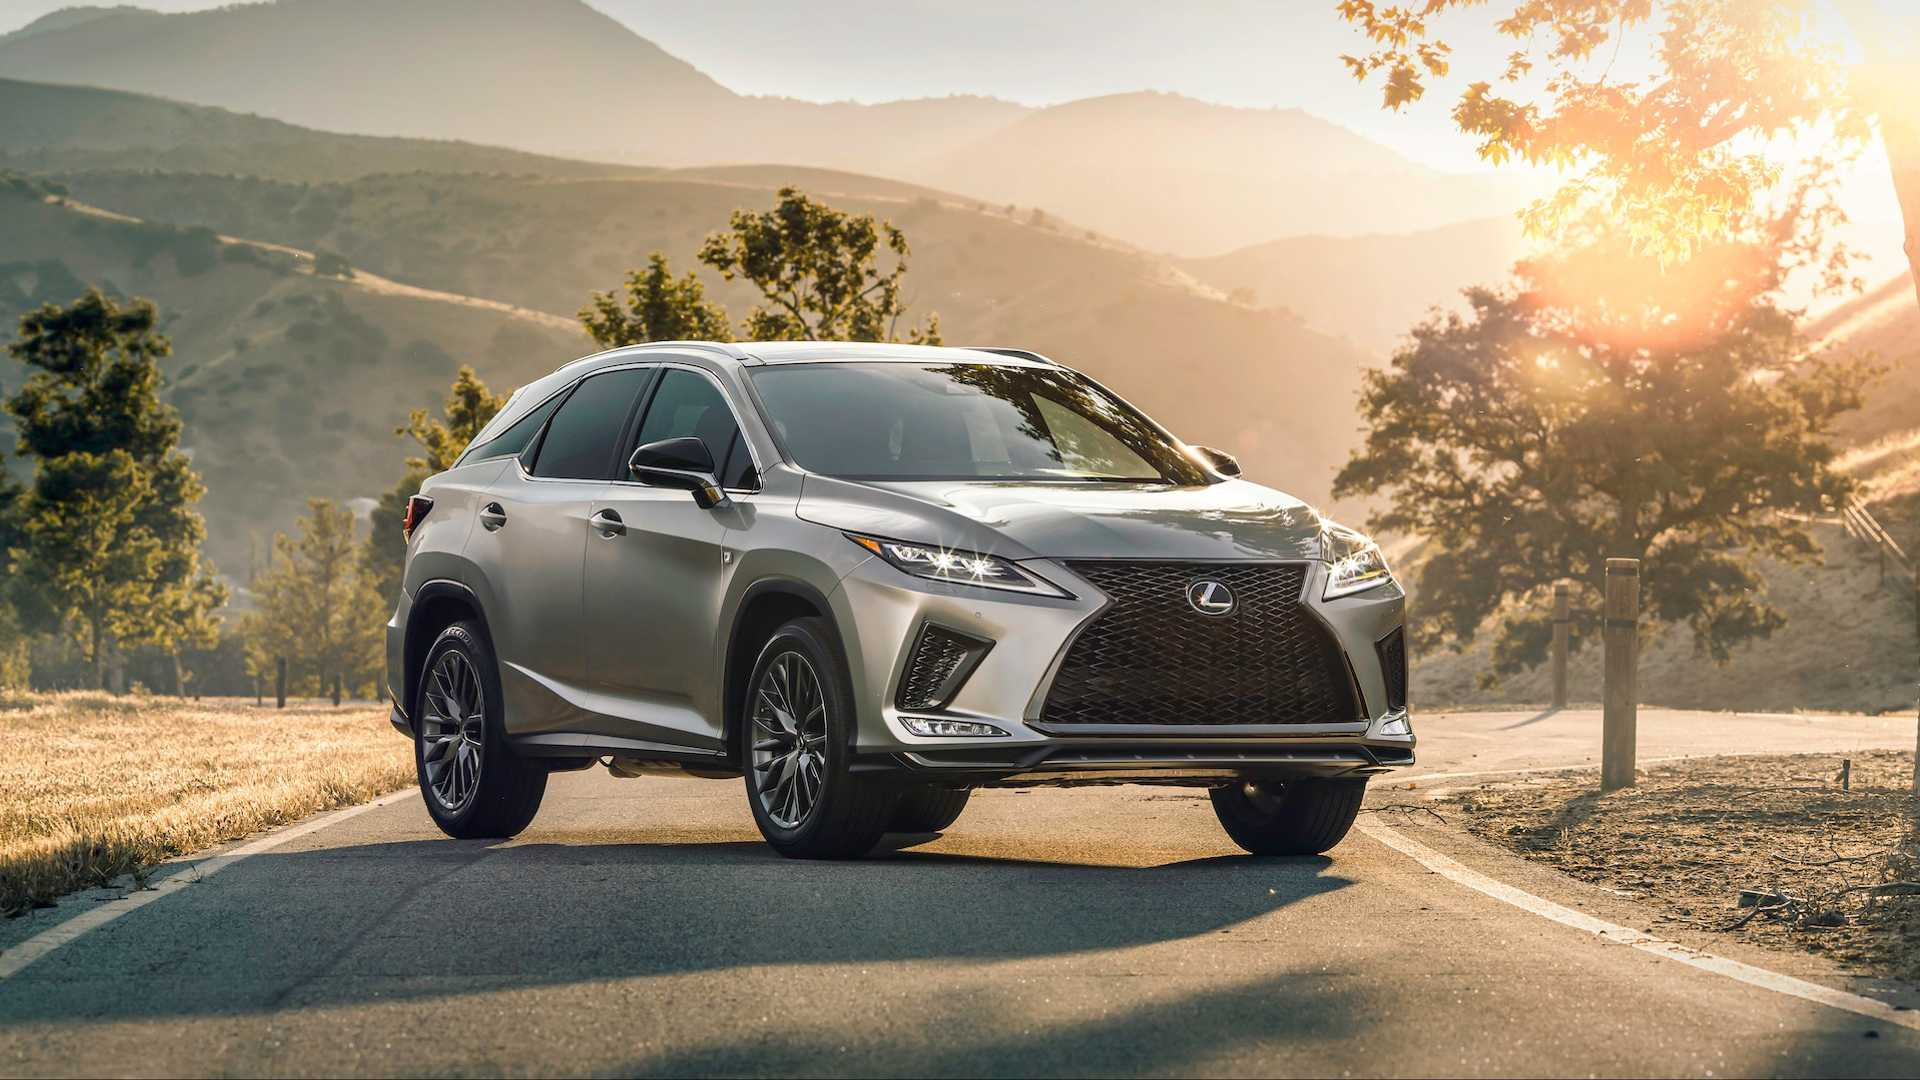 2020 Lexus Rx 350 F Sport Suv Price and Review